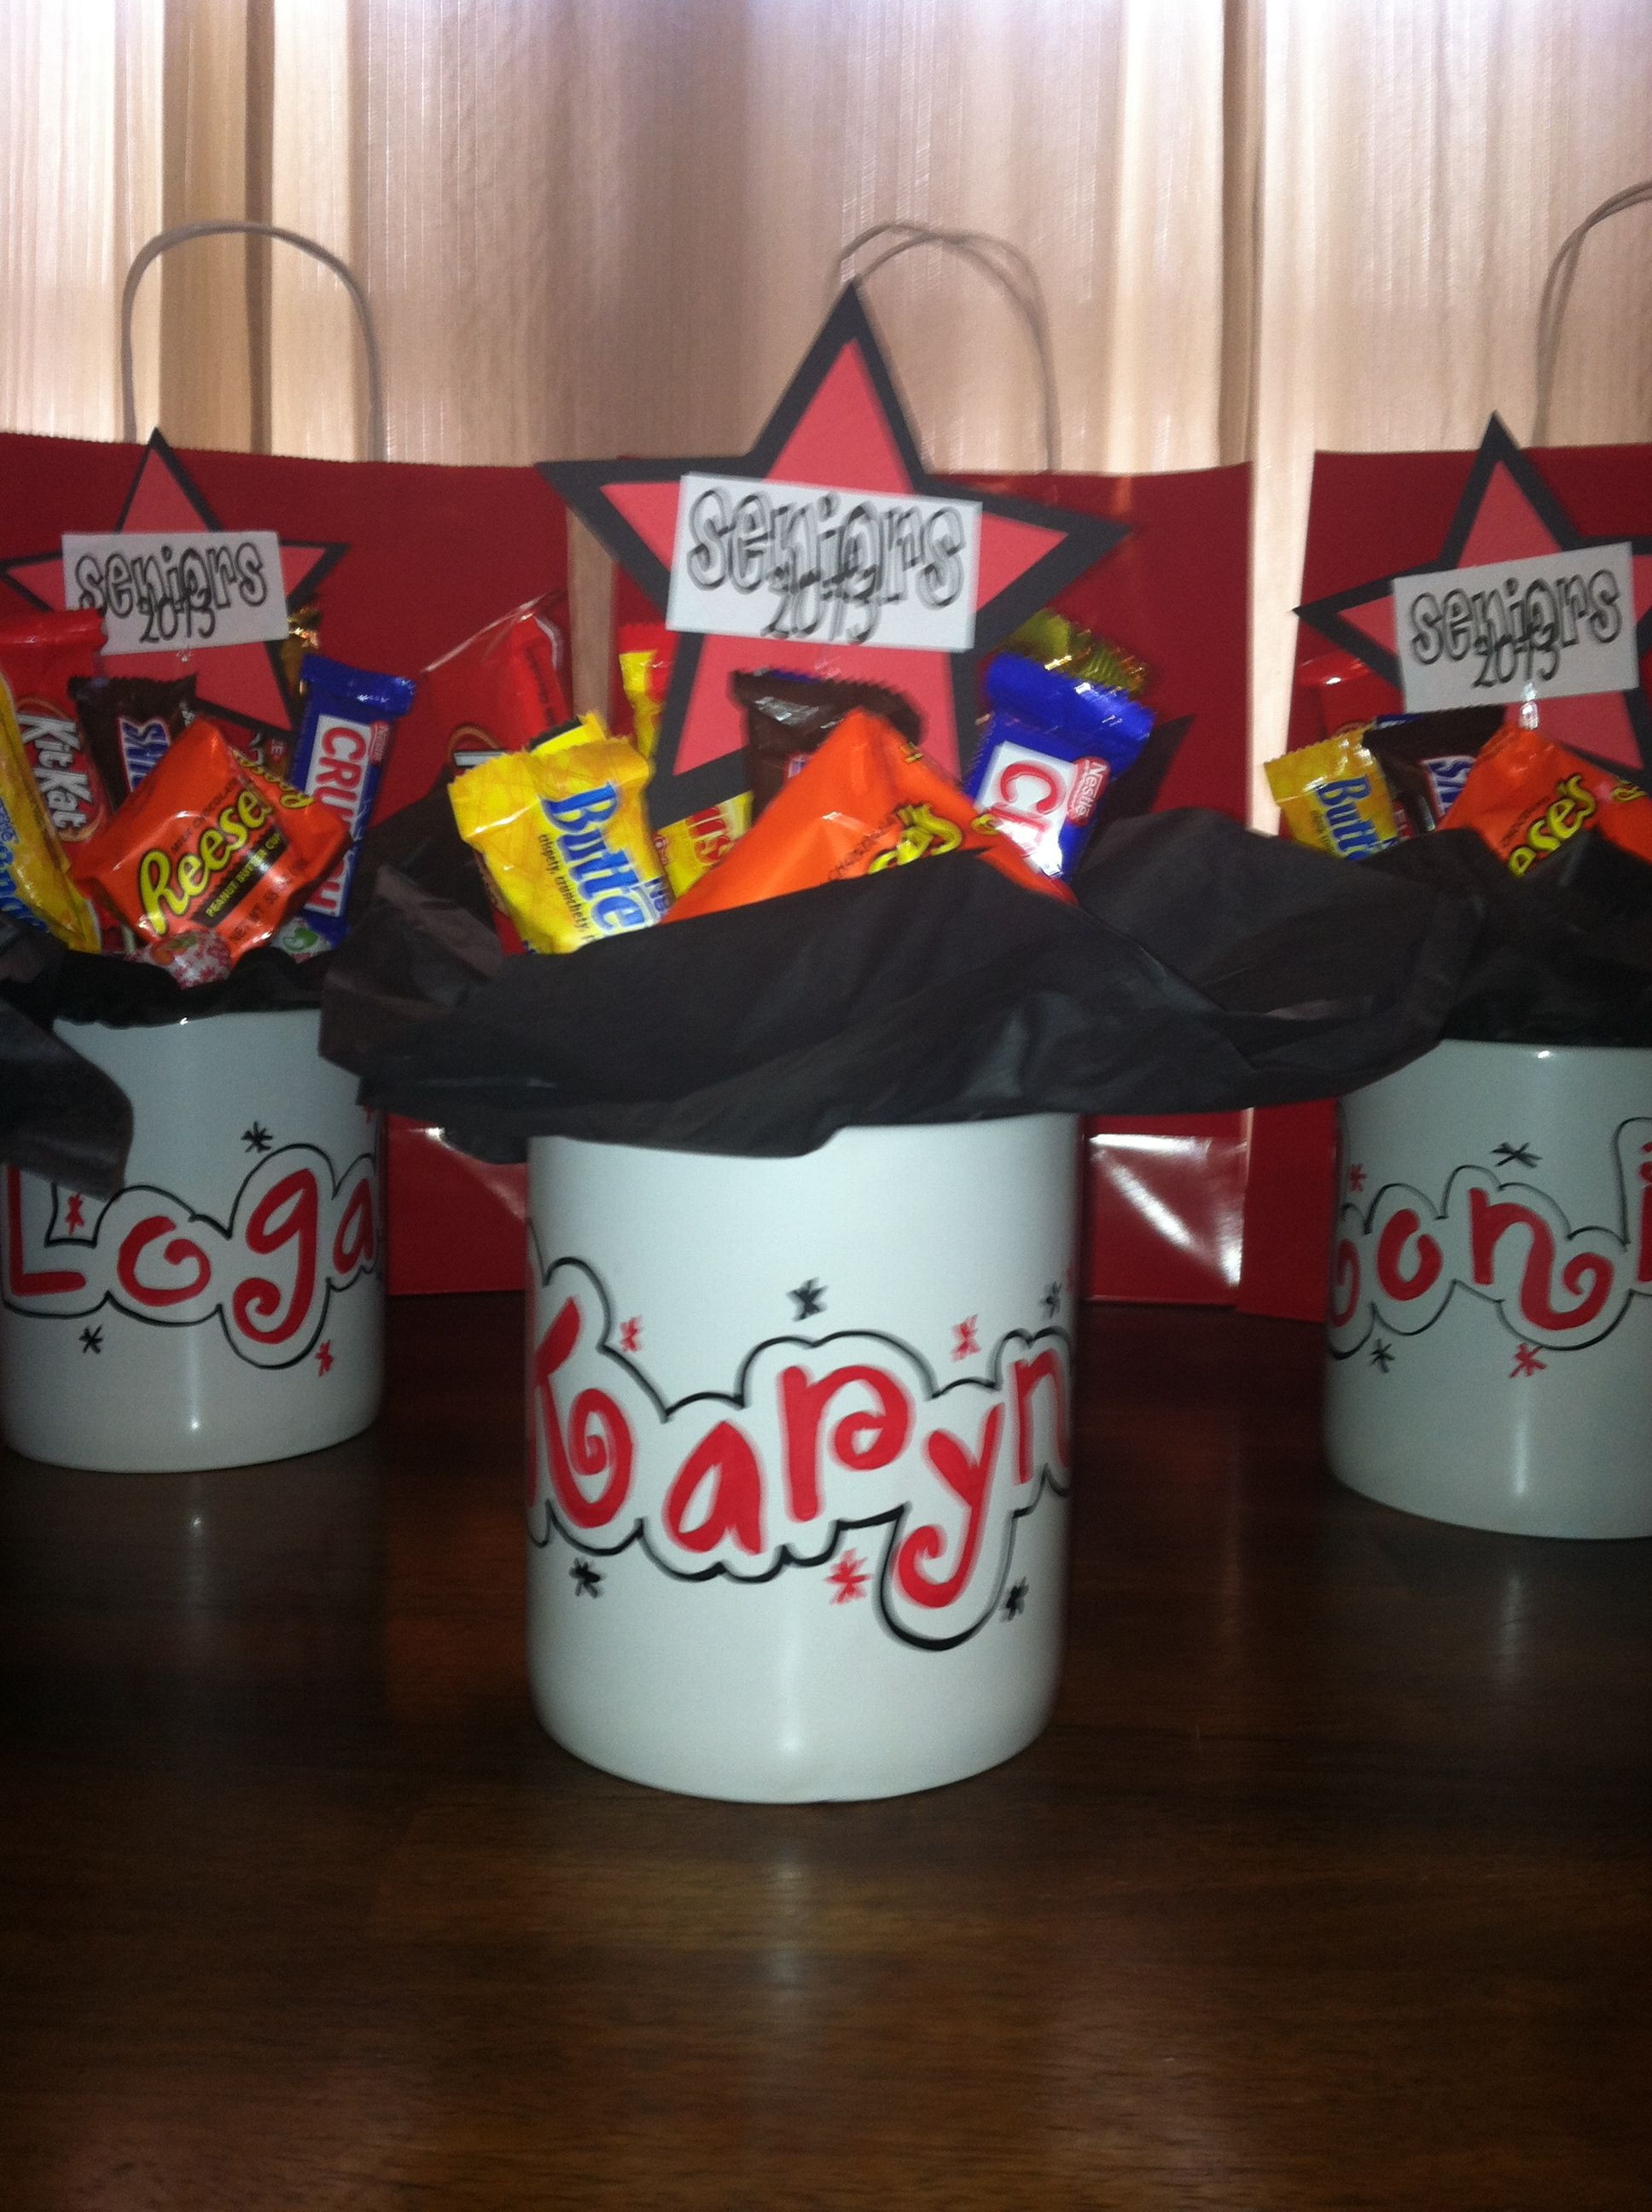 Best ideas about High School Senior Gift Ideas . Save or Pin Personalized candy bouquet mugs for high school senior Now.